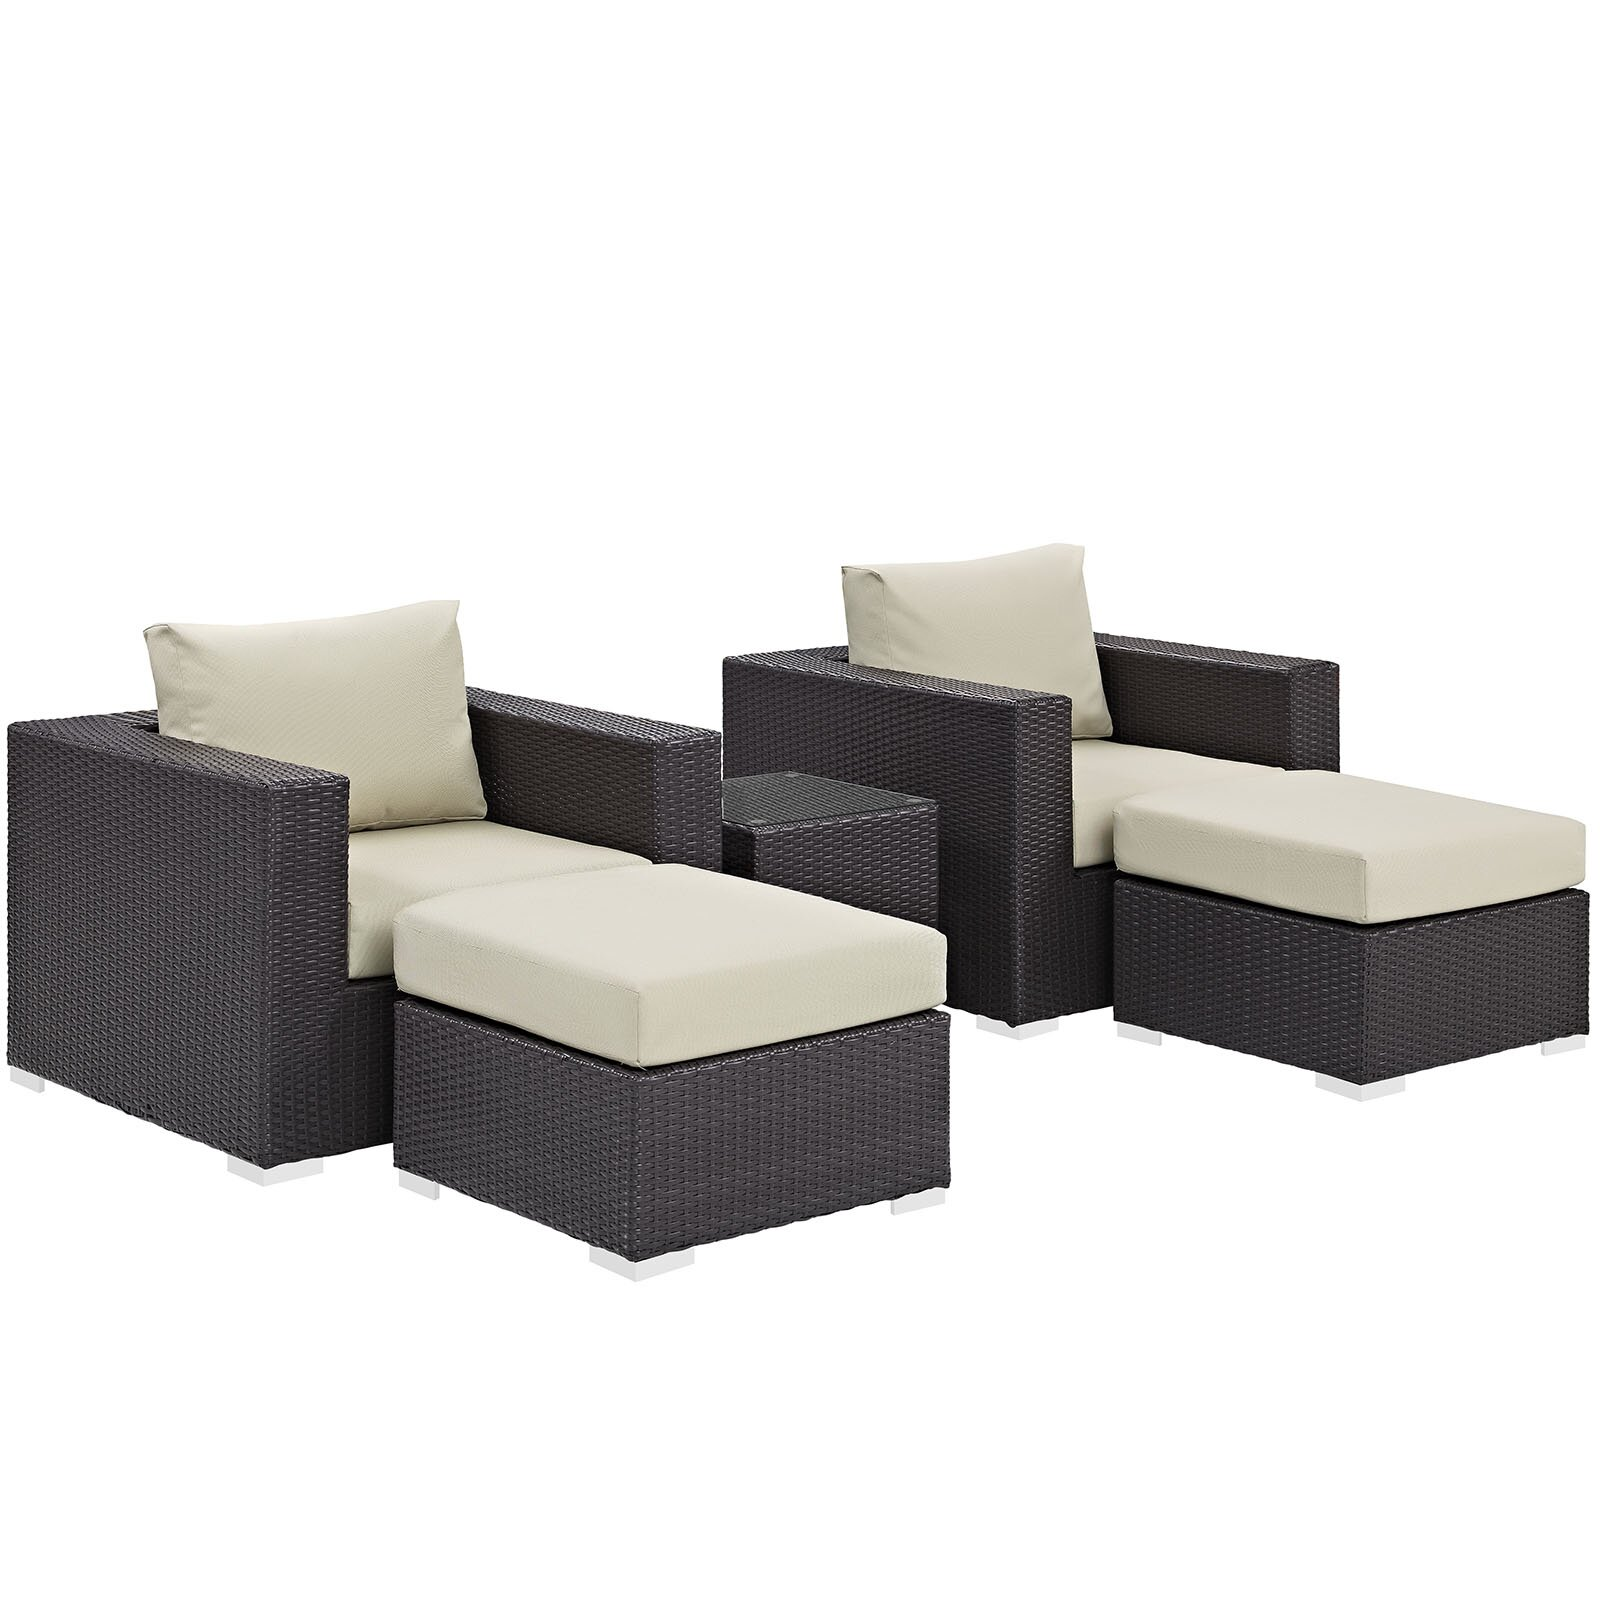 modway convene 5 outdoor patio sectional set with